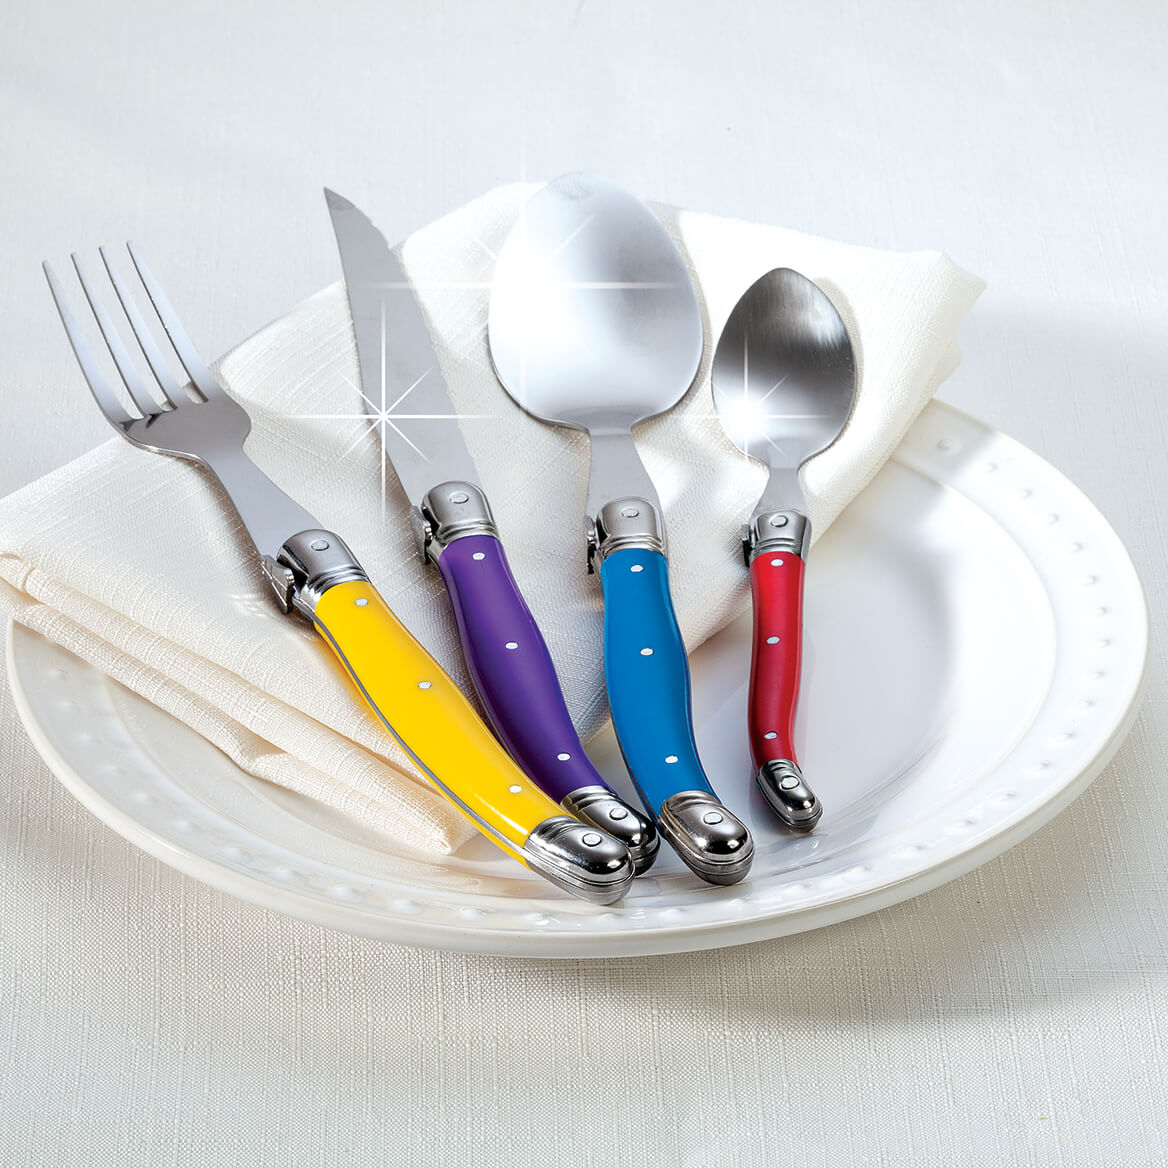 Provence 32 piece Flatware Set by Chef's Pride-368429